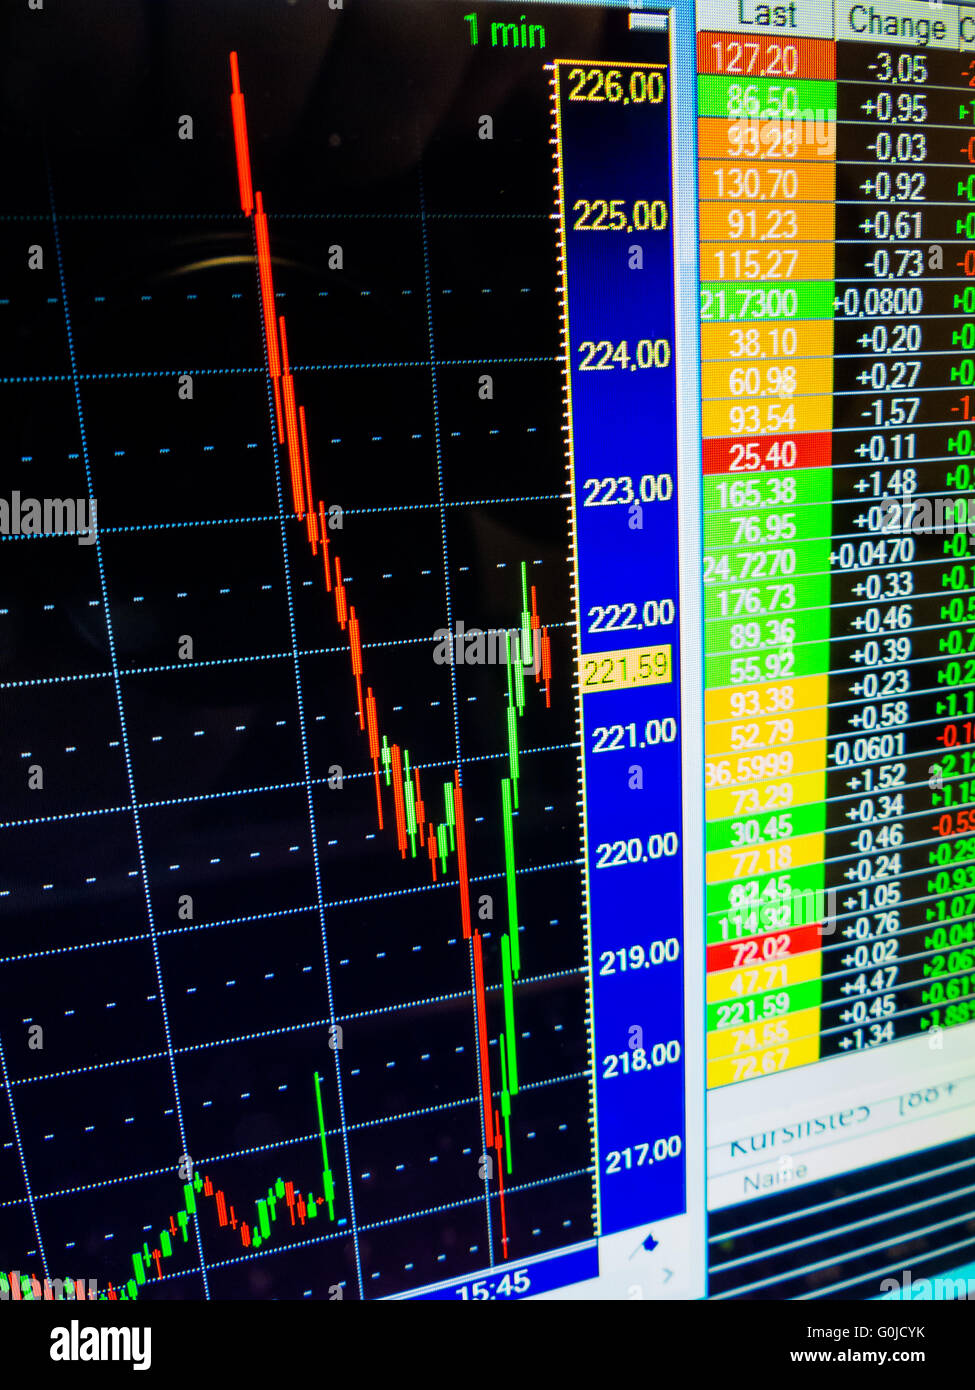 stark falling price of shares on the stock exchange Stock Photo